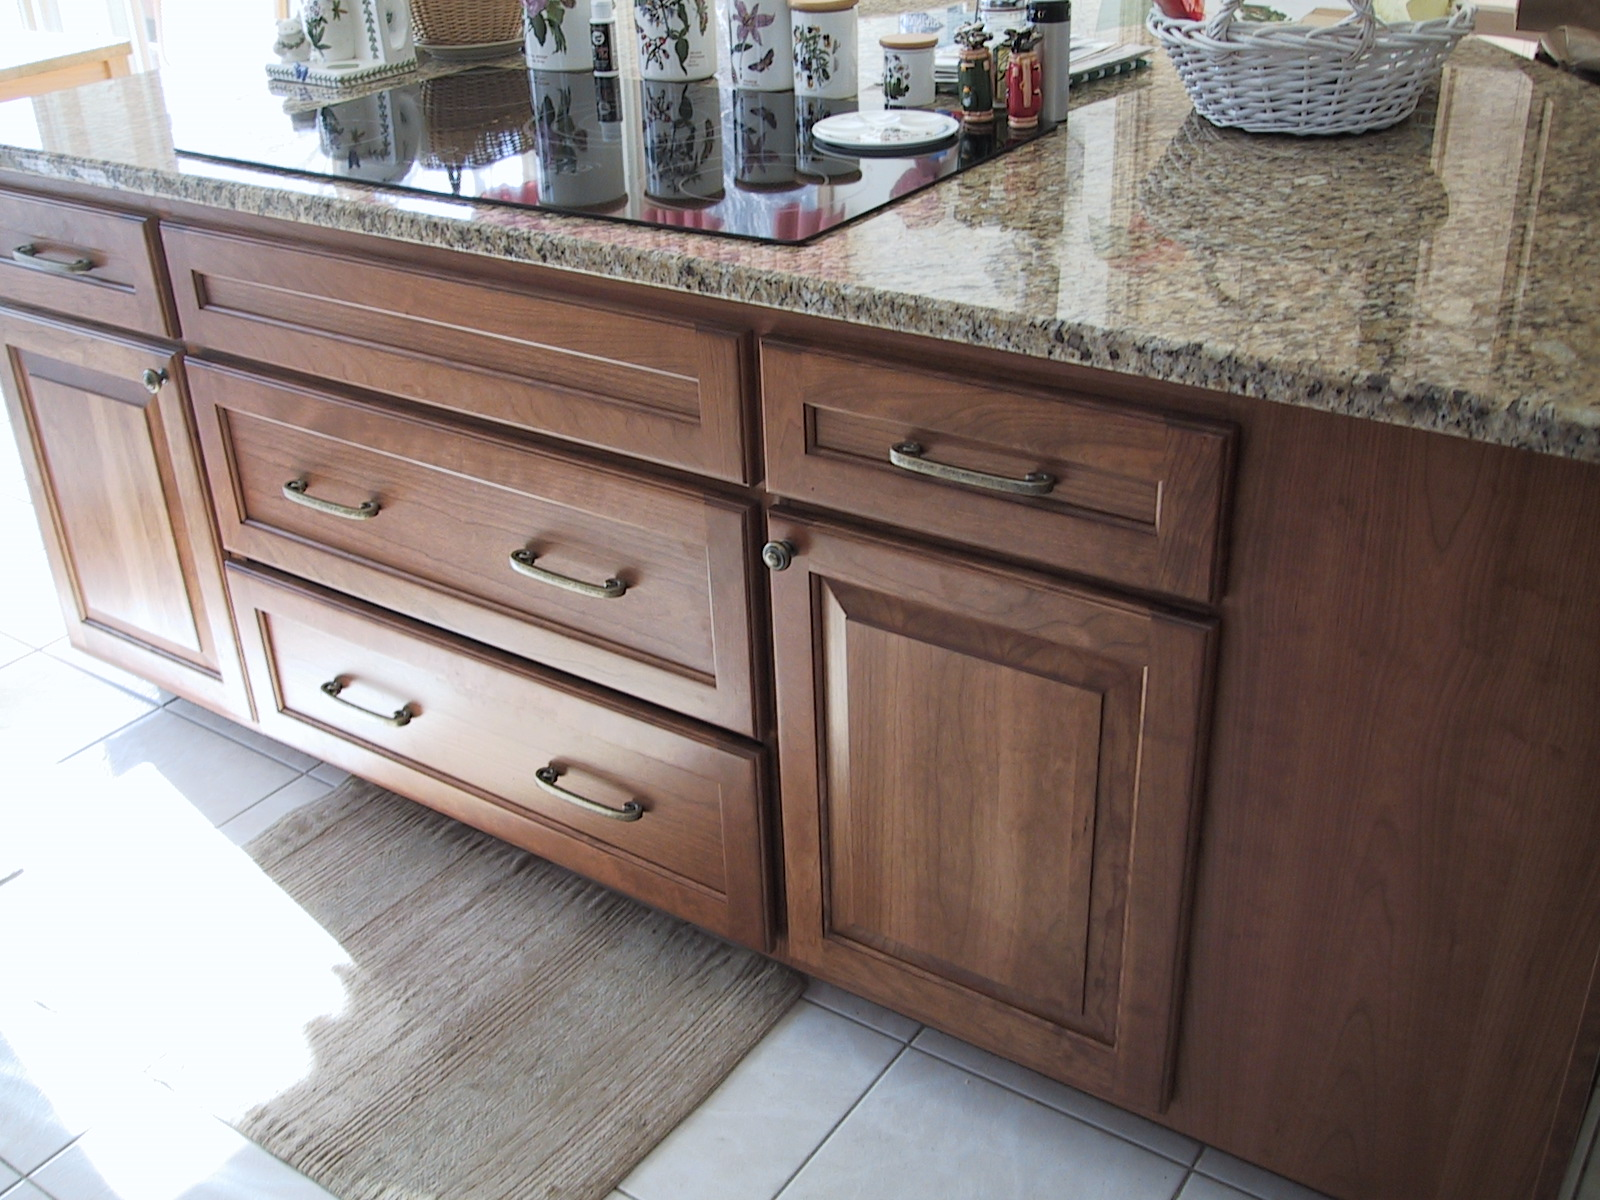 Replace Formica Countertop Replace The Cabinets And Keep The Granite Countertops